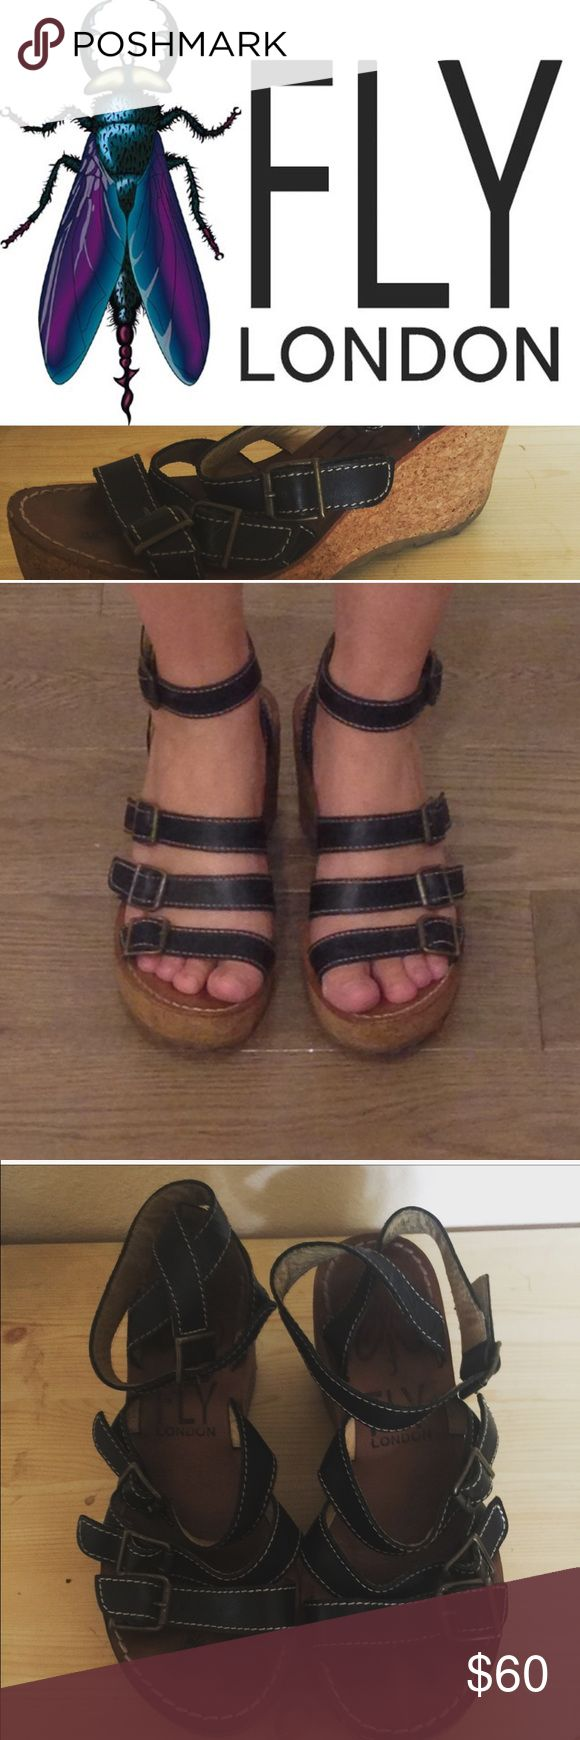 🎀 Why Not Wednesday 🎀 Great black leather sandals from Fly London. They have been worn, please note the pictures, but are still in great wearable condition. Euro 39. Fly London Shoes Wedges